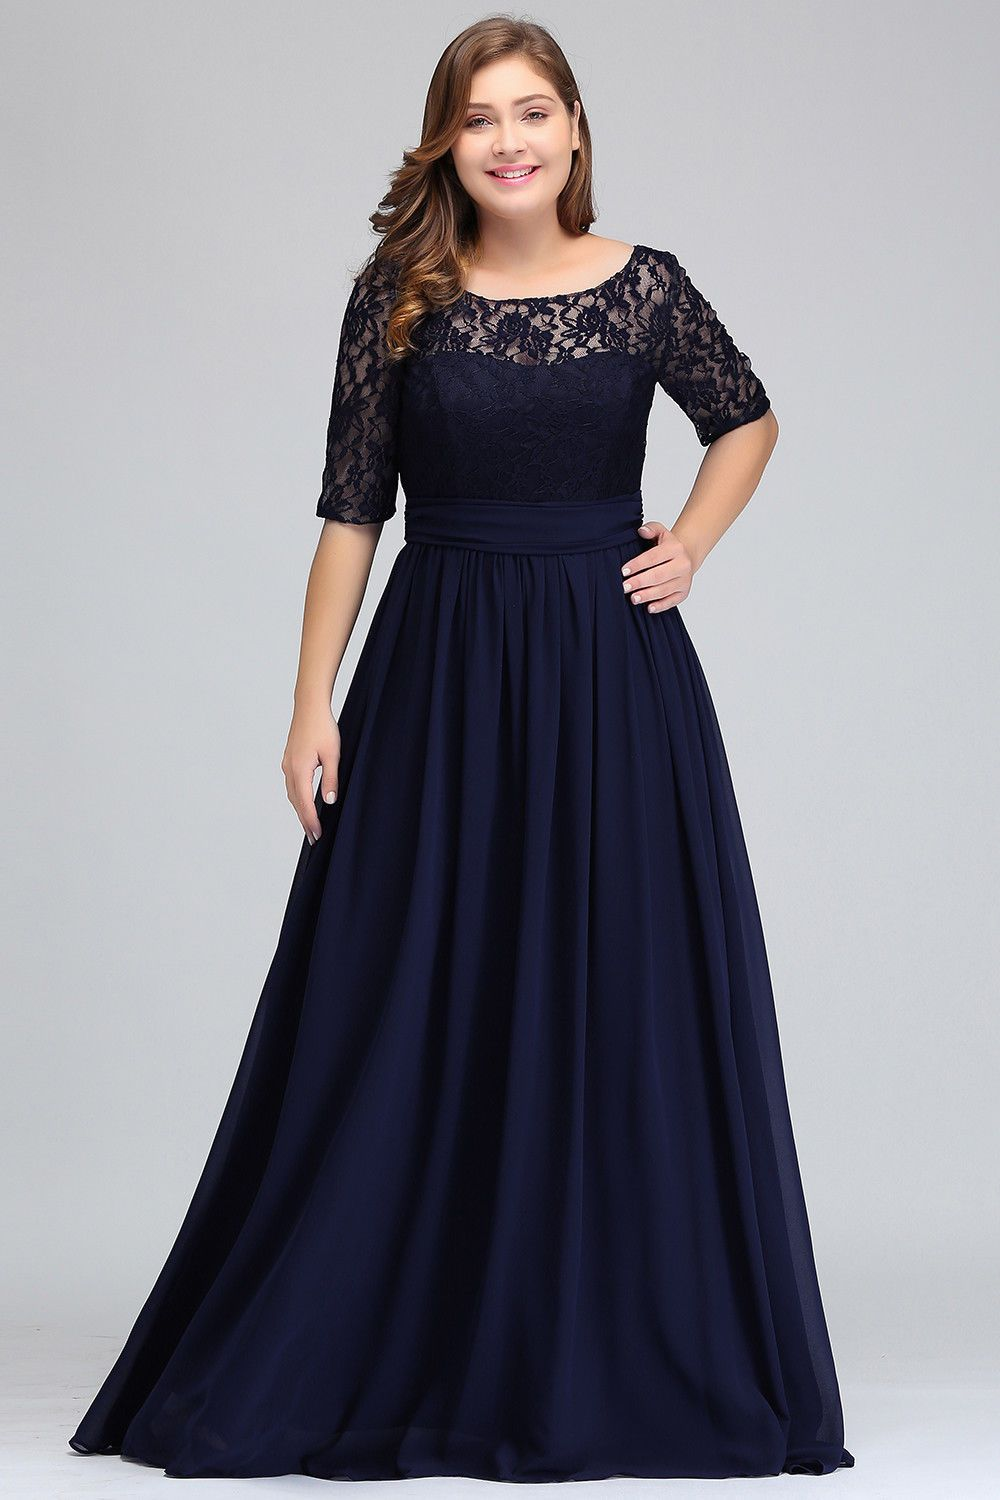 d7939c784da Evening Long Prom Dresses Formal Party Ball Gown Bridesmaid Dress Plus Size  – Diva Wear